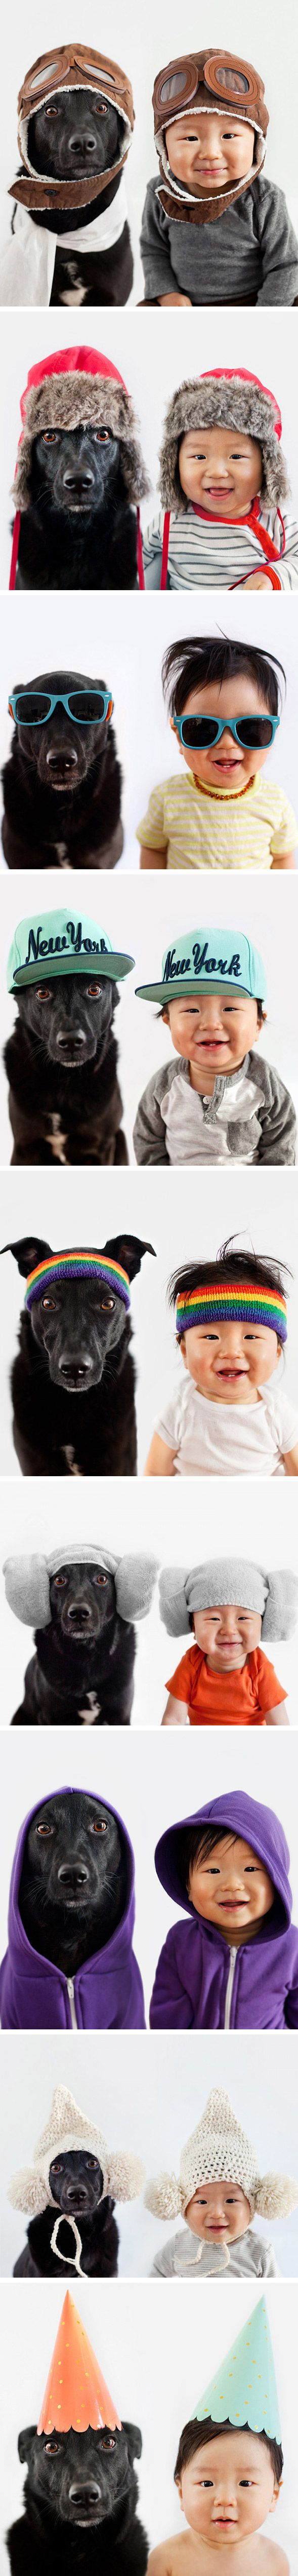 baby and cute dog?! sold!